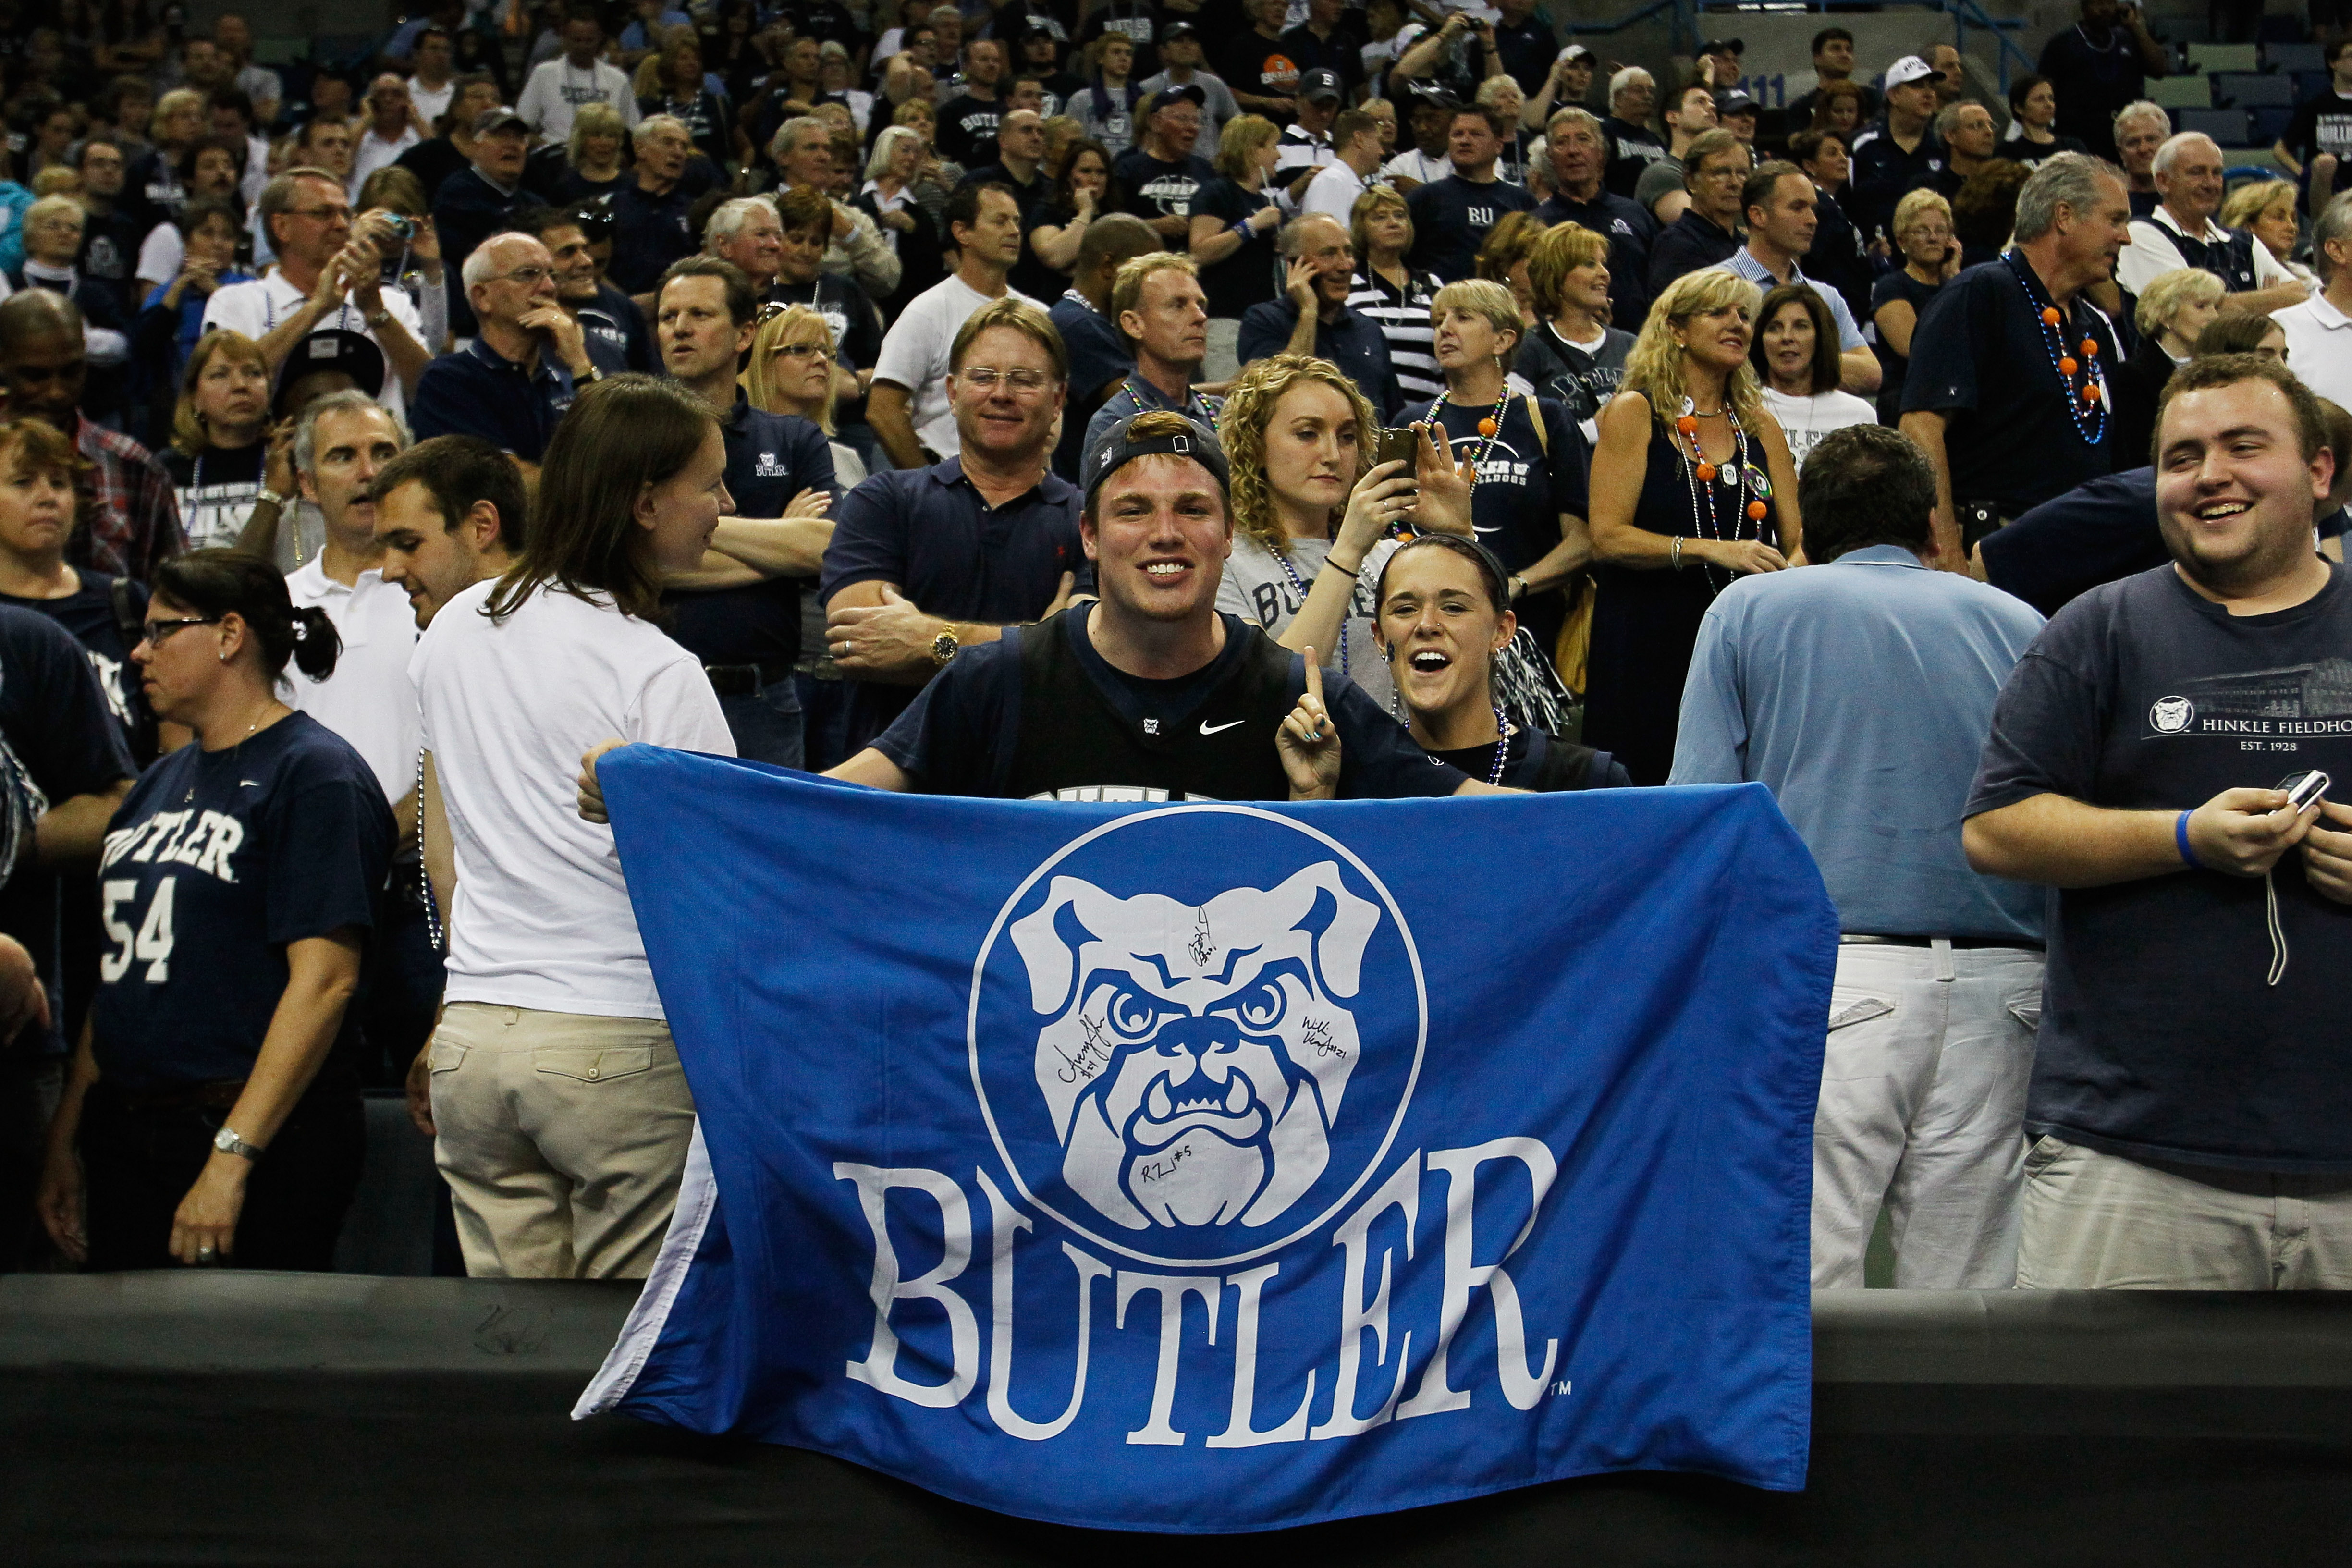 NEW ORLEANS, LA - MARCH 26:  Butler Bulldogs fans hold up a flag during their game against the Florida Gators in the Southeast regional final of the 2011 NCAA men's basketball tournament at New Orleans Arena on March 26, 2011 in New Orleans, Louisiana.  (